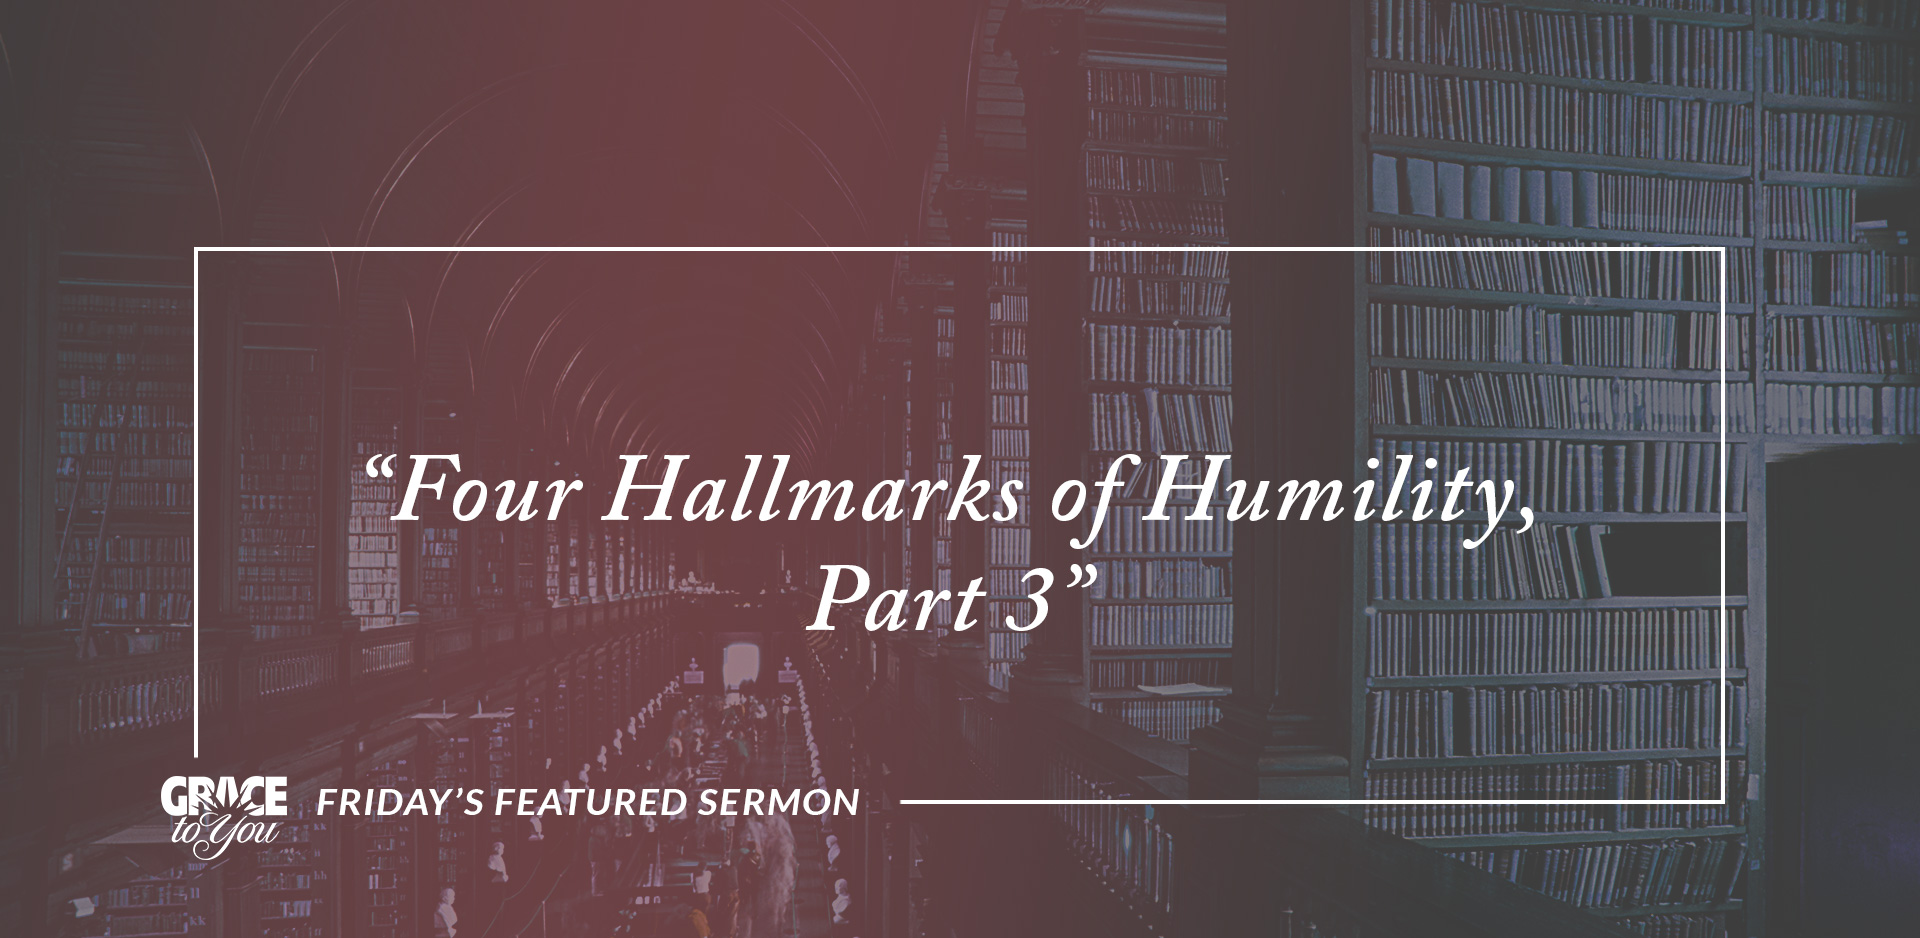 "Friday's Featured Sermon: ""Four Hallmarks of Humility, Part 3"""